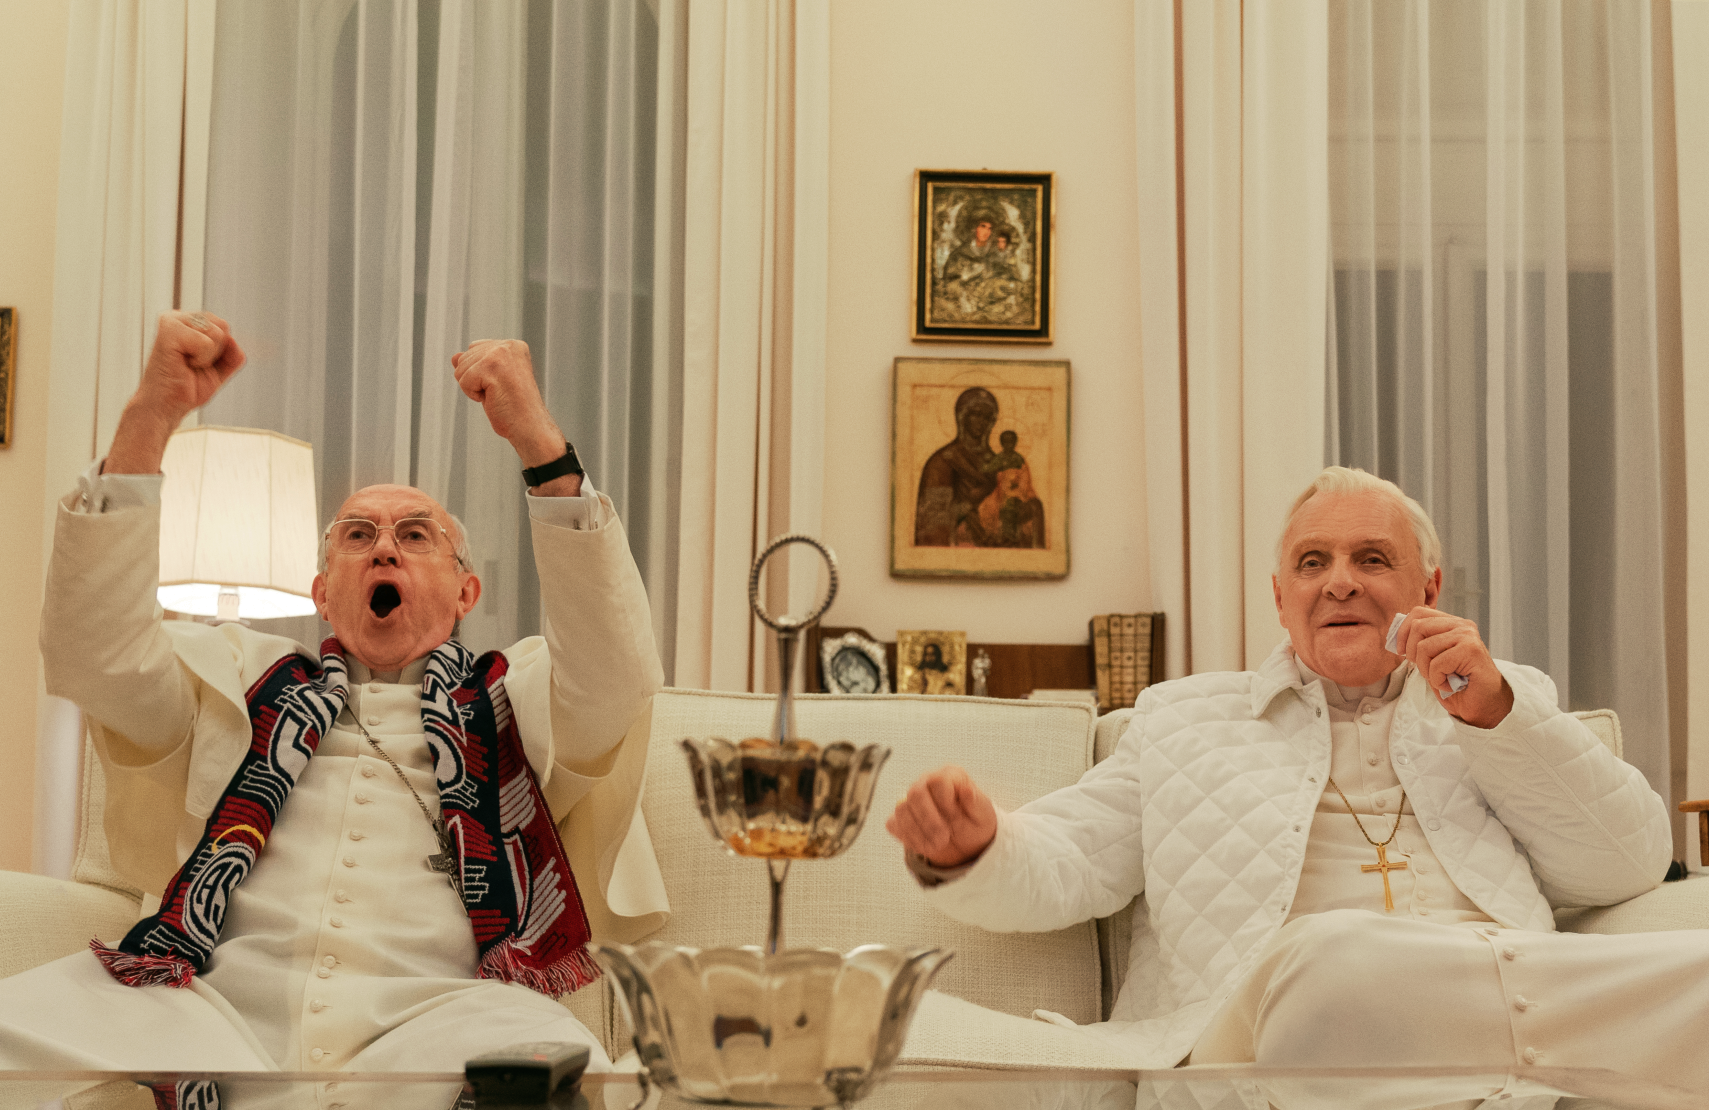 Cardinal Bergoglio (Jonathan Pryce) and Pope Benedict (Anthony Hopkins) take a break from debating the church's future to enjoy some sport on TV. (Netflix)